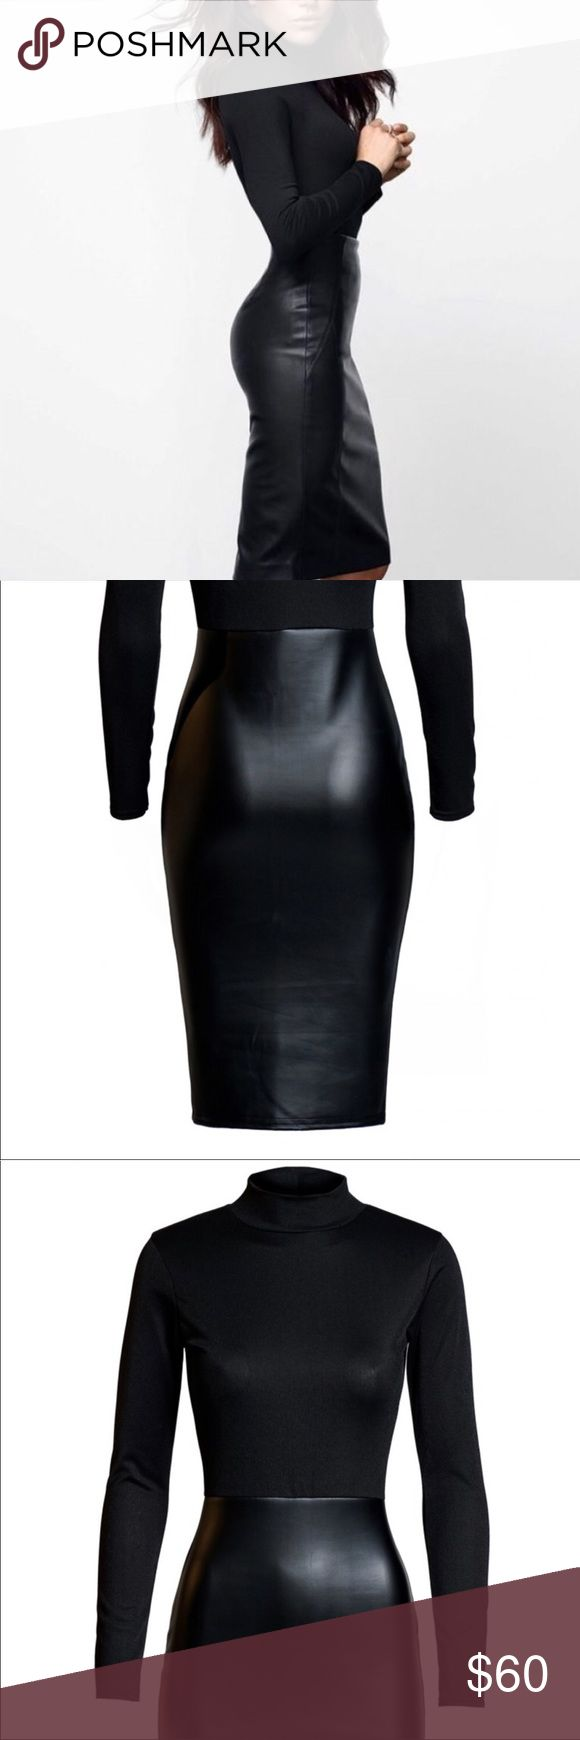 """🌹JUST IN! Gorgeous Leatherette Bottom Dress This gorgeous dress features a high neck top and leatherette bottom, perfect for party or formal wear, it is approximately 41"""", constructed of 95% polyester/5% elastane, sizes are true to size.  Note - this garment was manufactured in the UK, for this reason the tag on the garment is the UK size, I have already converted the sizes to US which are true to size 6, 8, 10, 12 Dresses Midi"""